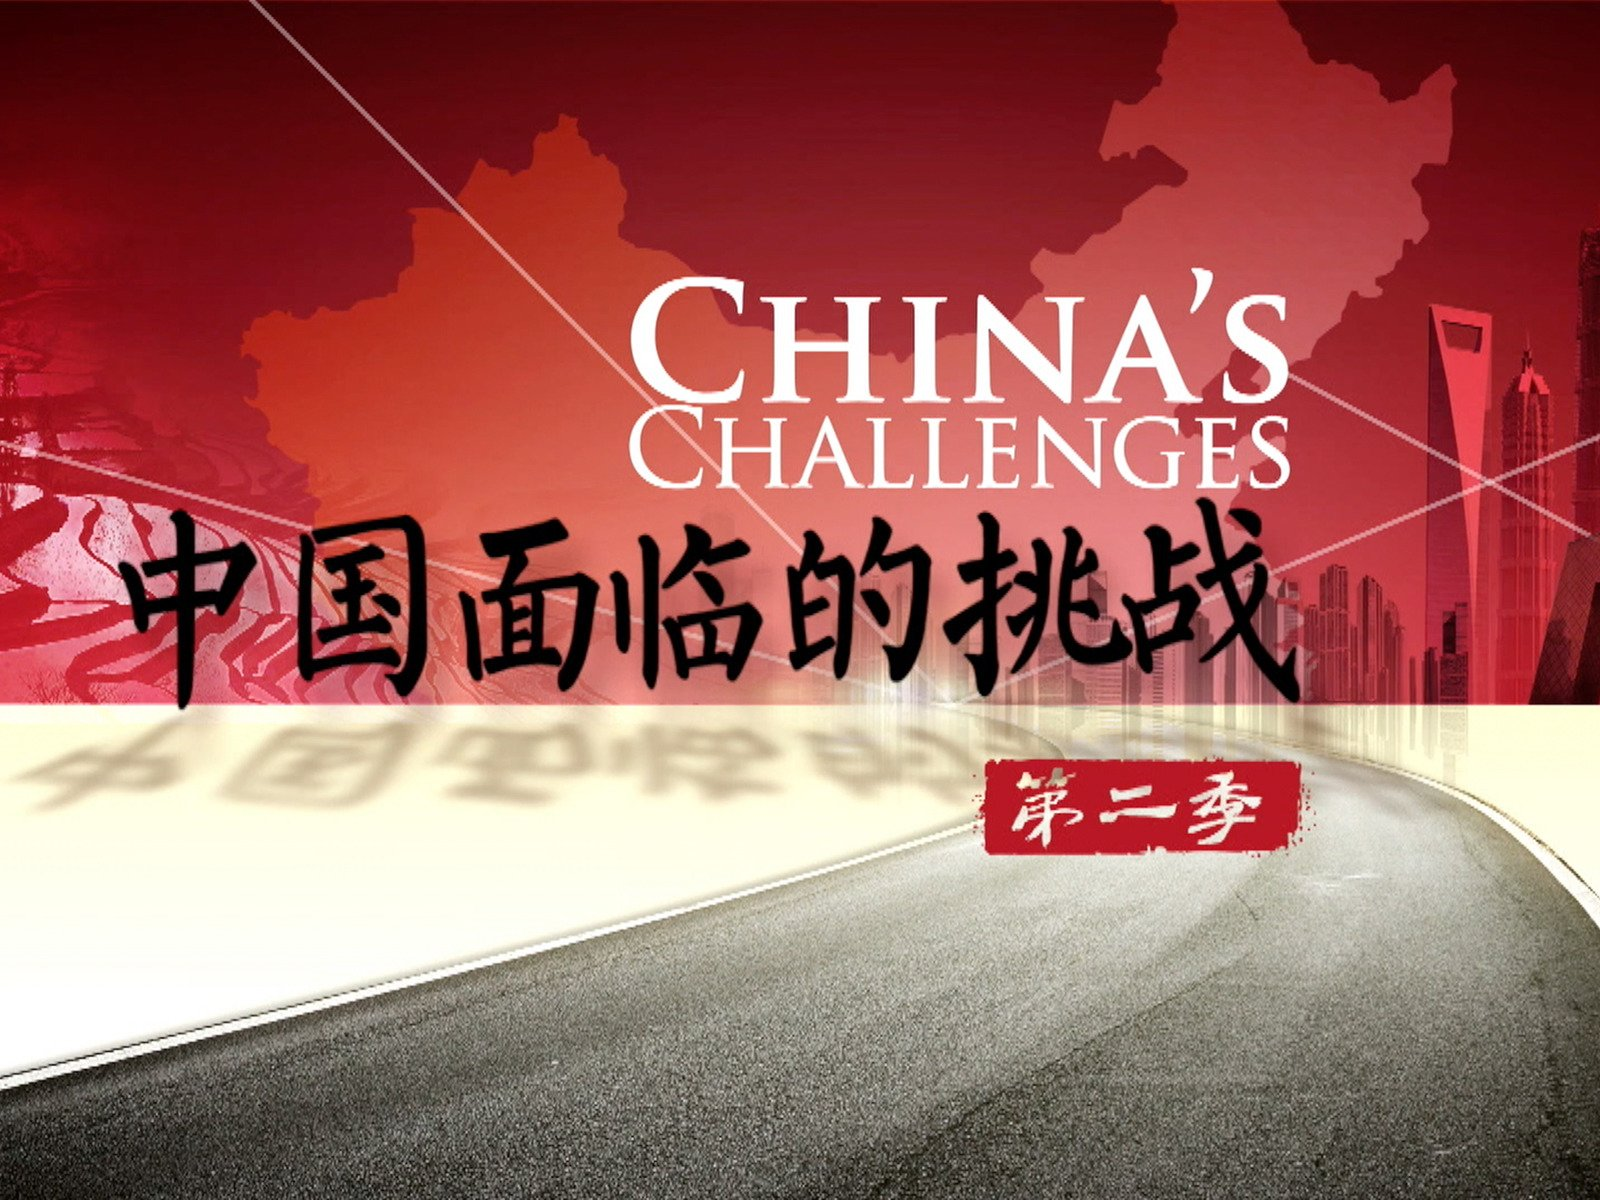 China's Challenges - Season 1